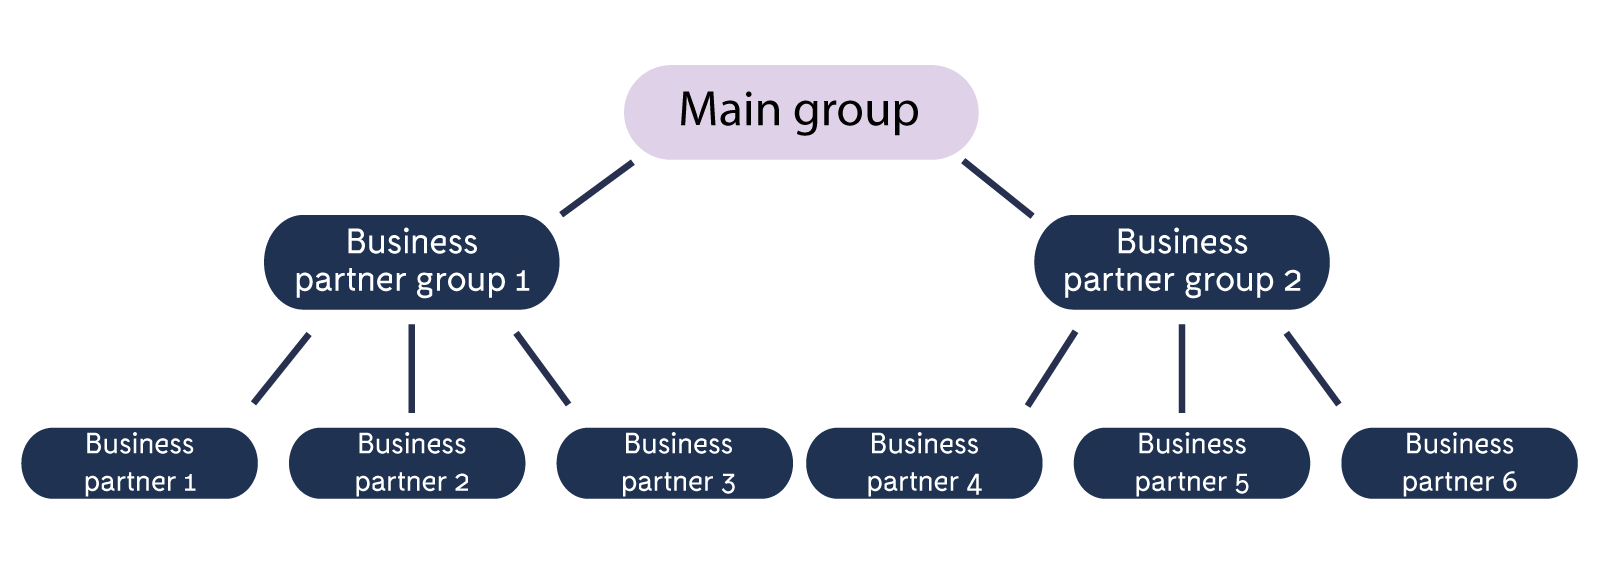 Main_Groups_Main_groups.png